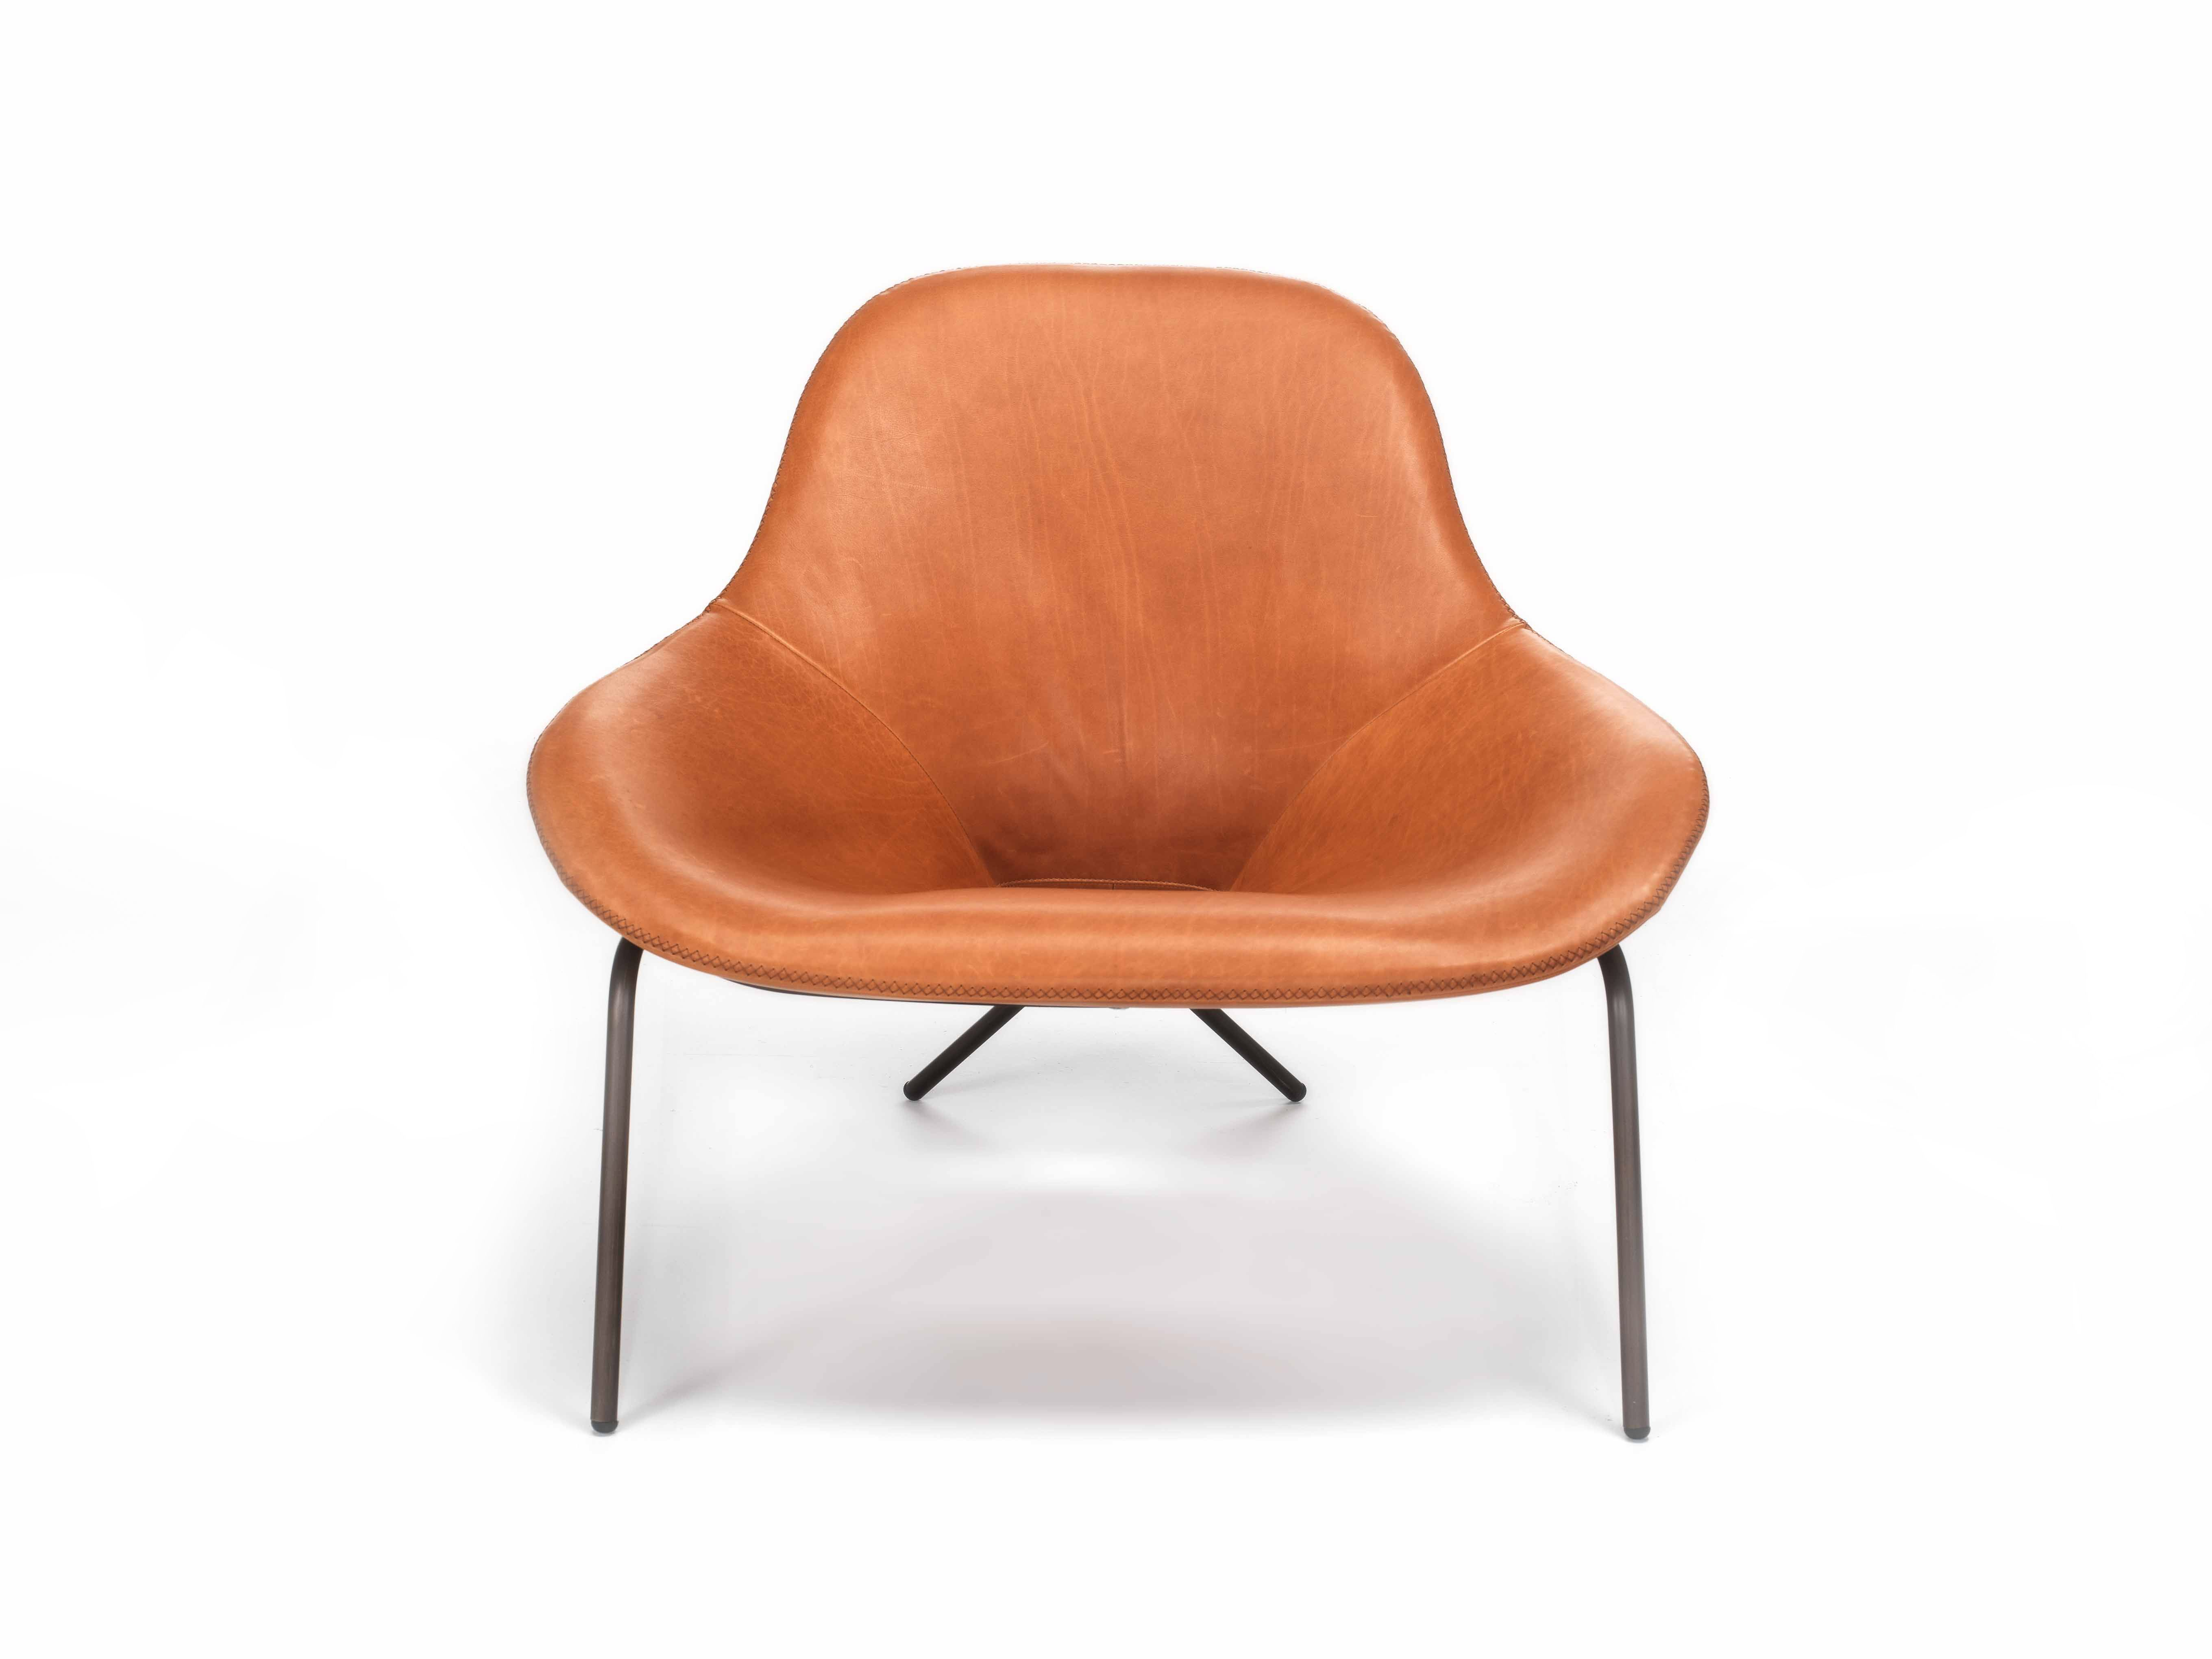 Cross Leg Chair By Magnus Long For The Conran Shop Leather Easy Chair Leather Occasional Chair